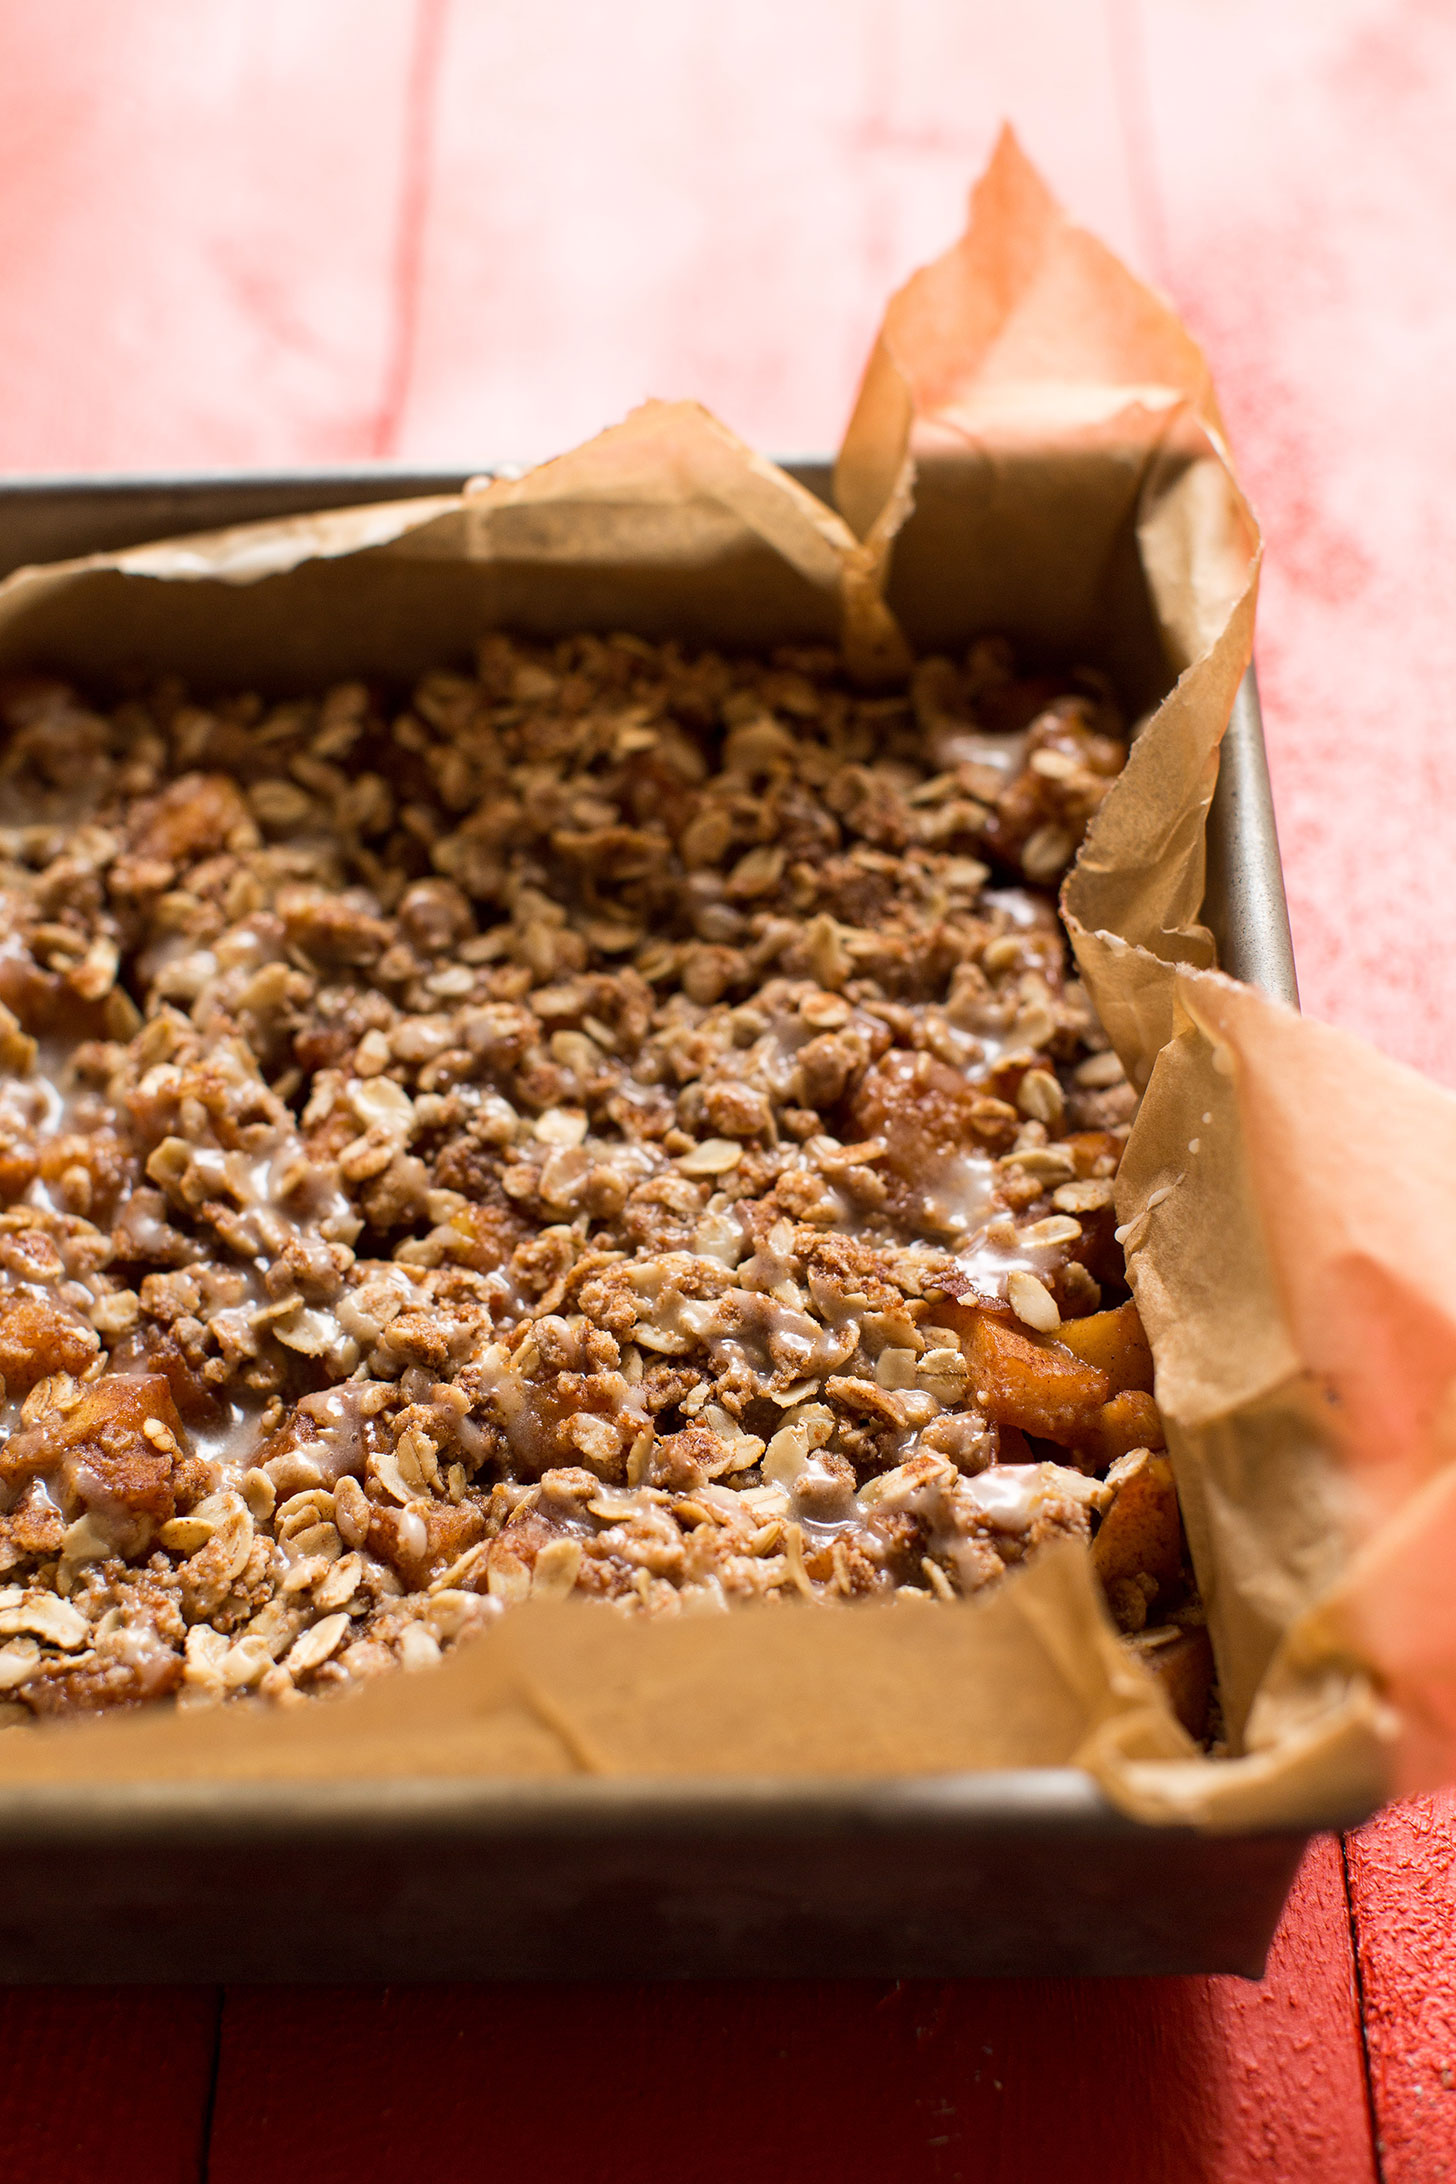 Freshly baked gluten-free vegan Apple Pie Crumble Bars in a parchment-lined baking pan